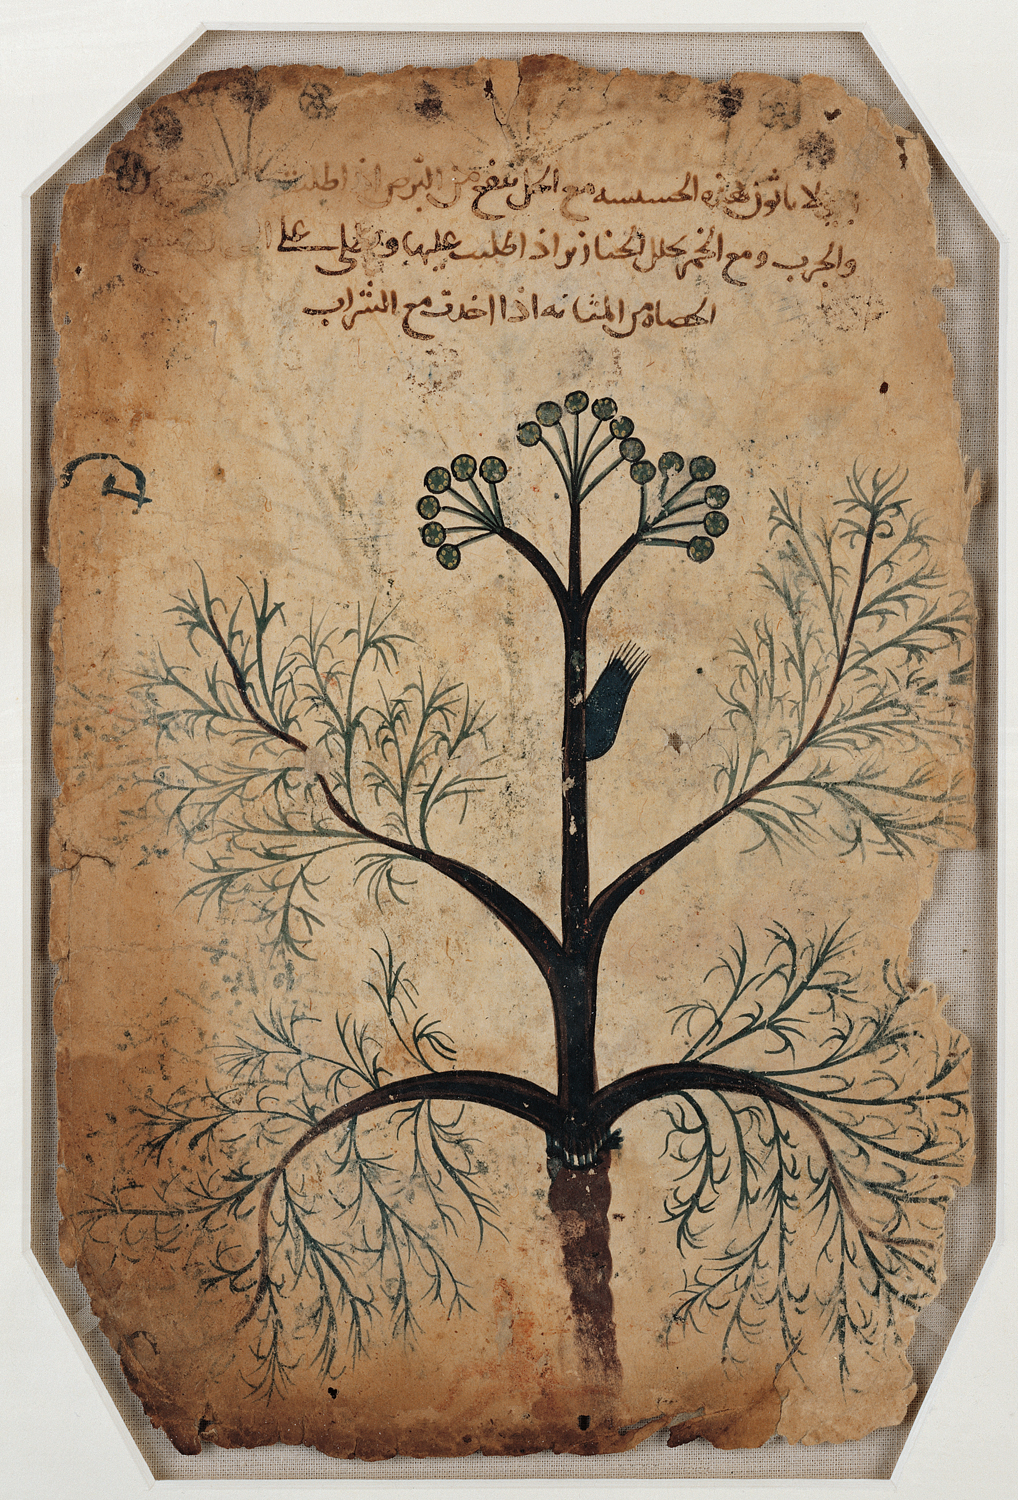 Folio from De Materia Medica (Iraq, circa 1200). First translated into Syriac and then into Arabic, the work became a widely used manuscript for Islamic studies of pharmacology. Photo: Courtesy of the Aga Khan Trust for Culture